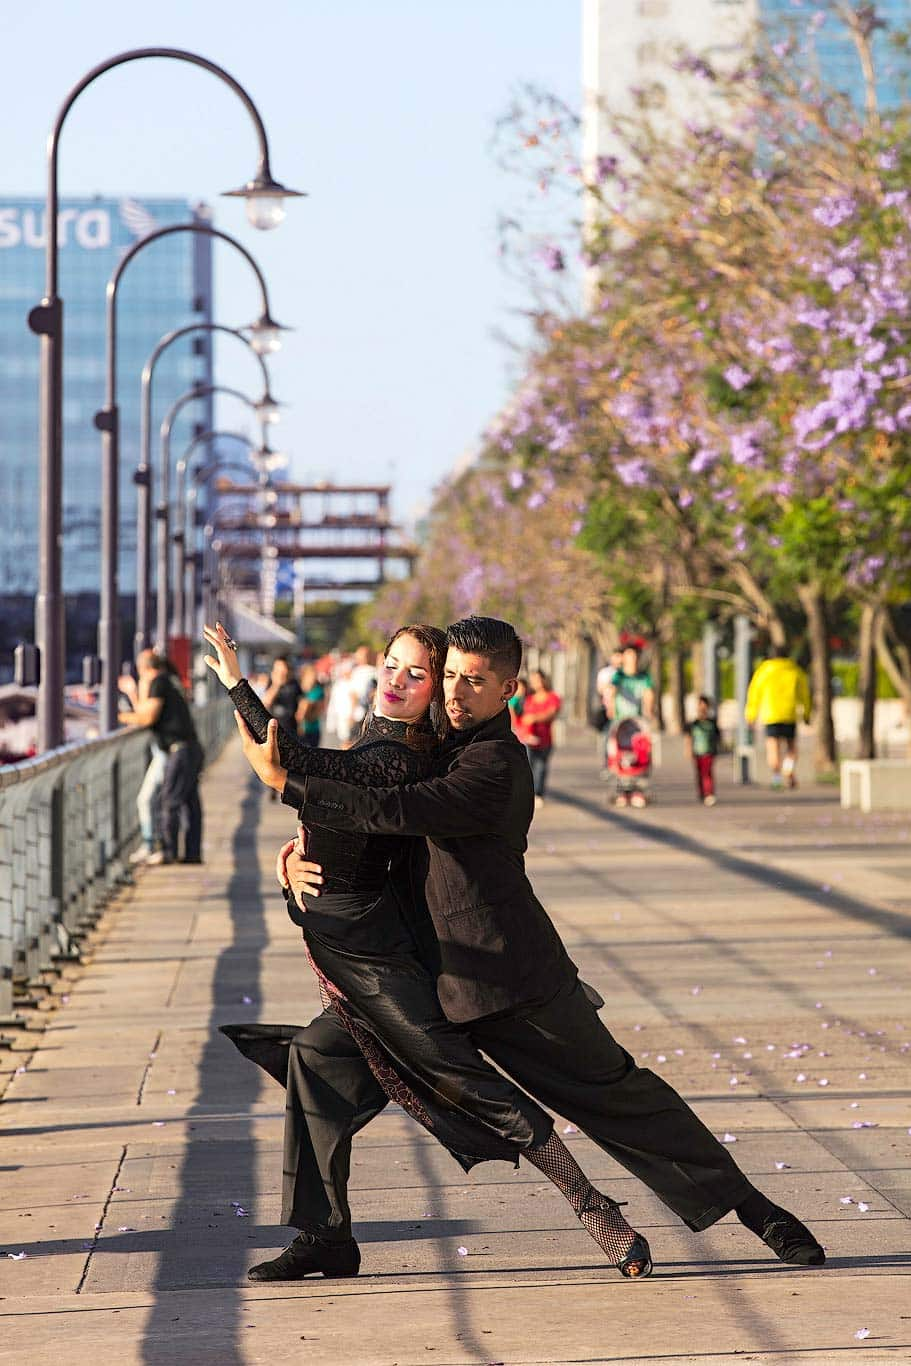 Tango dancers photo shoot in Buenos Aires